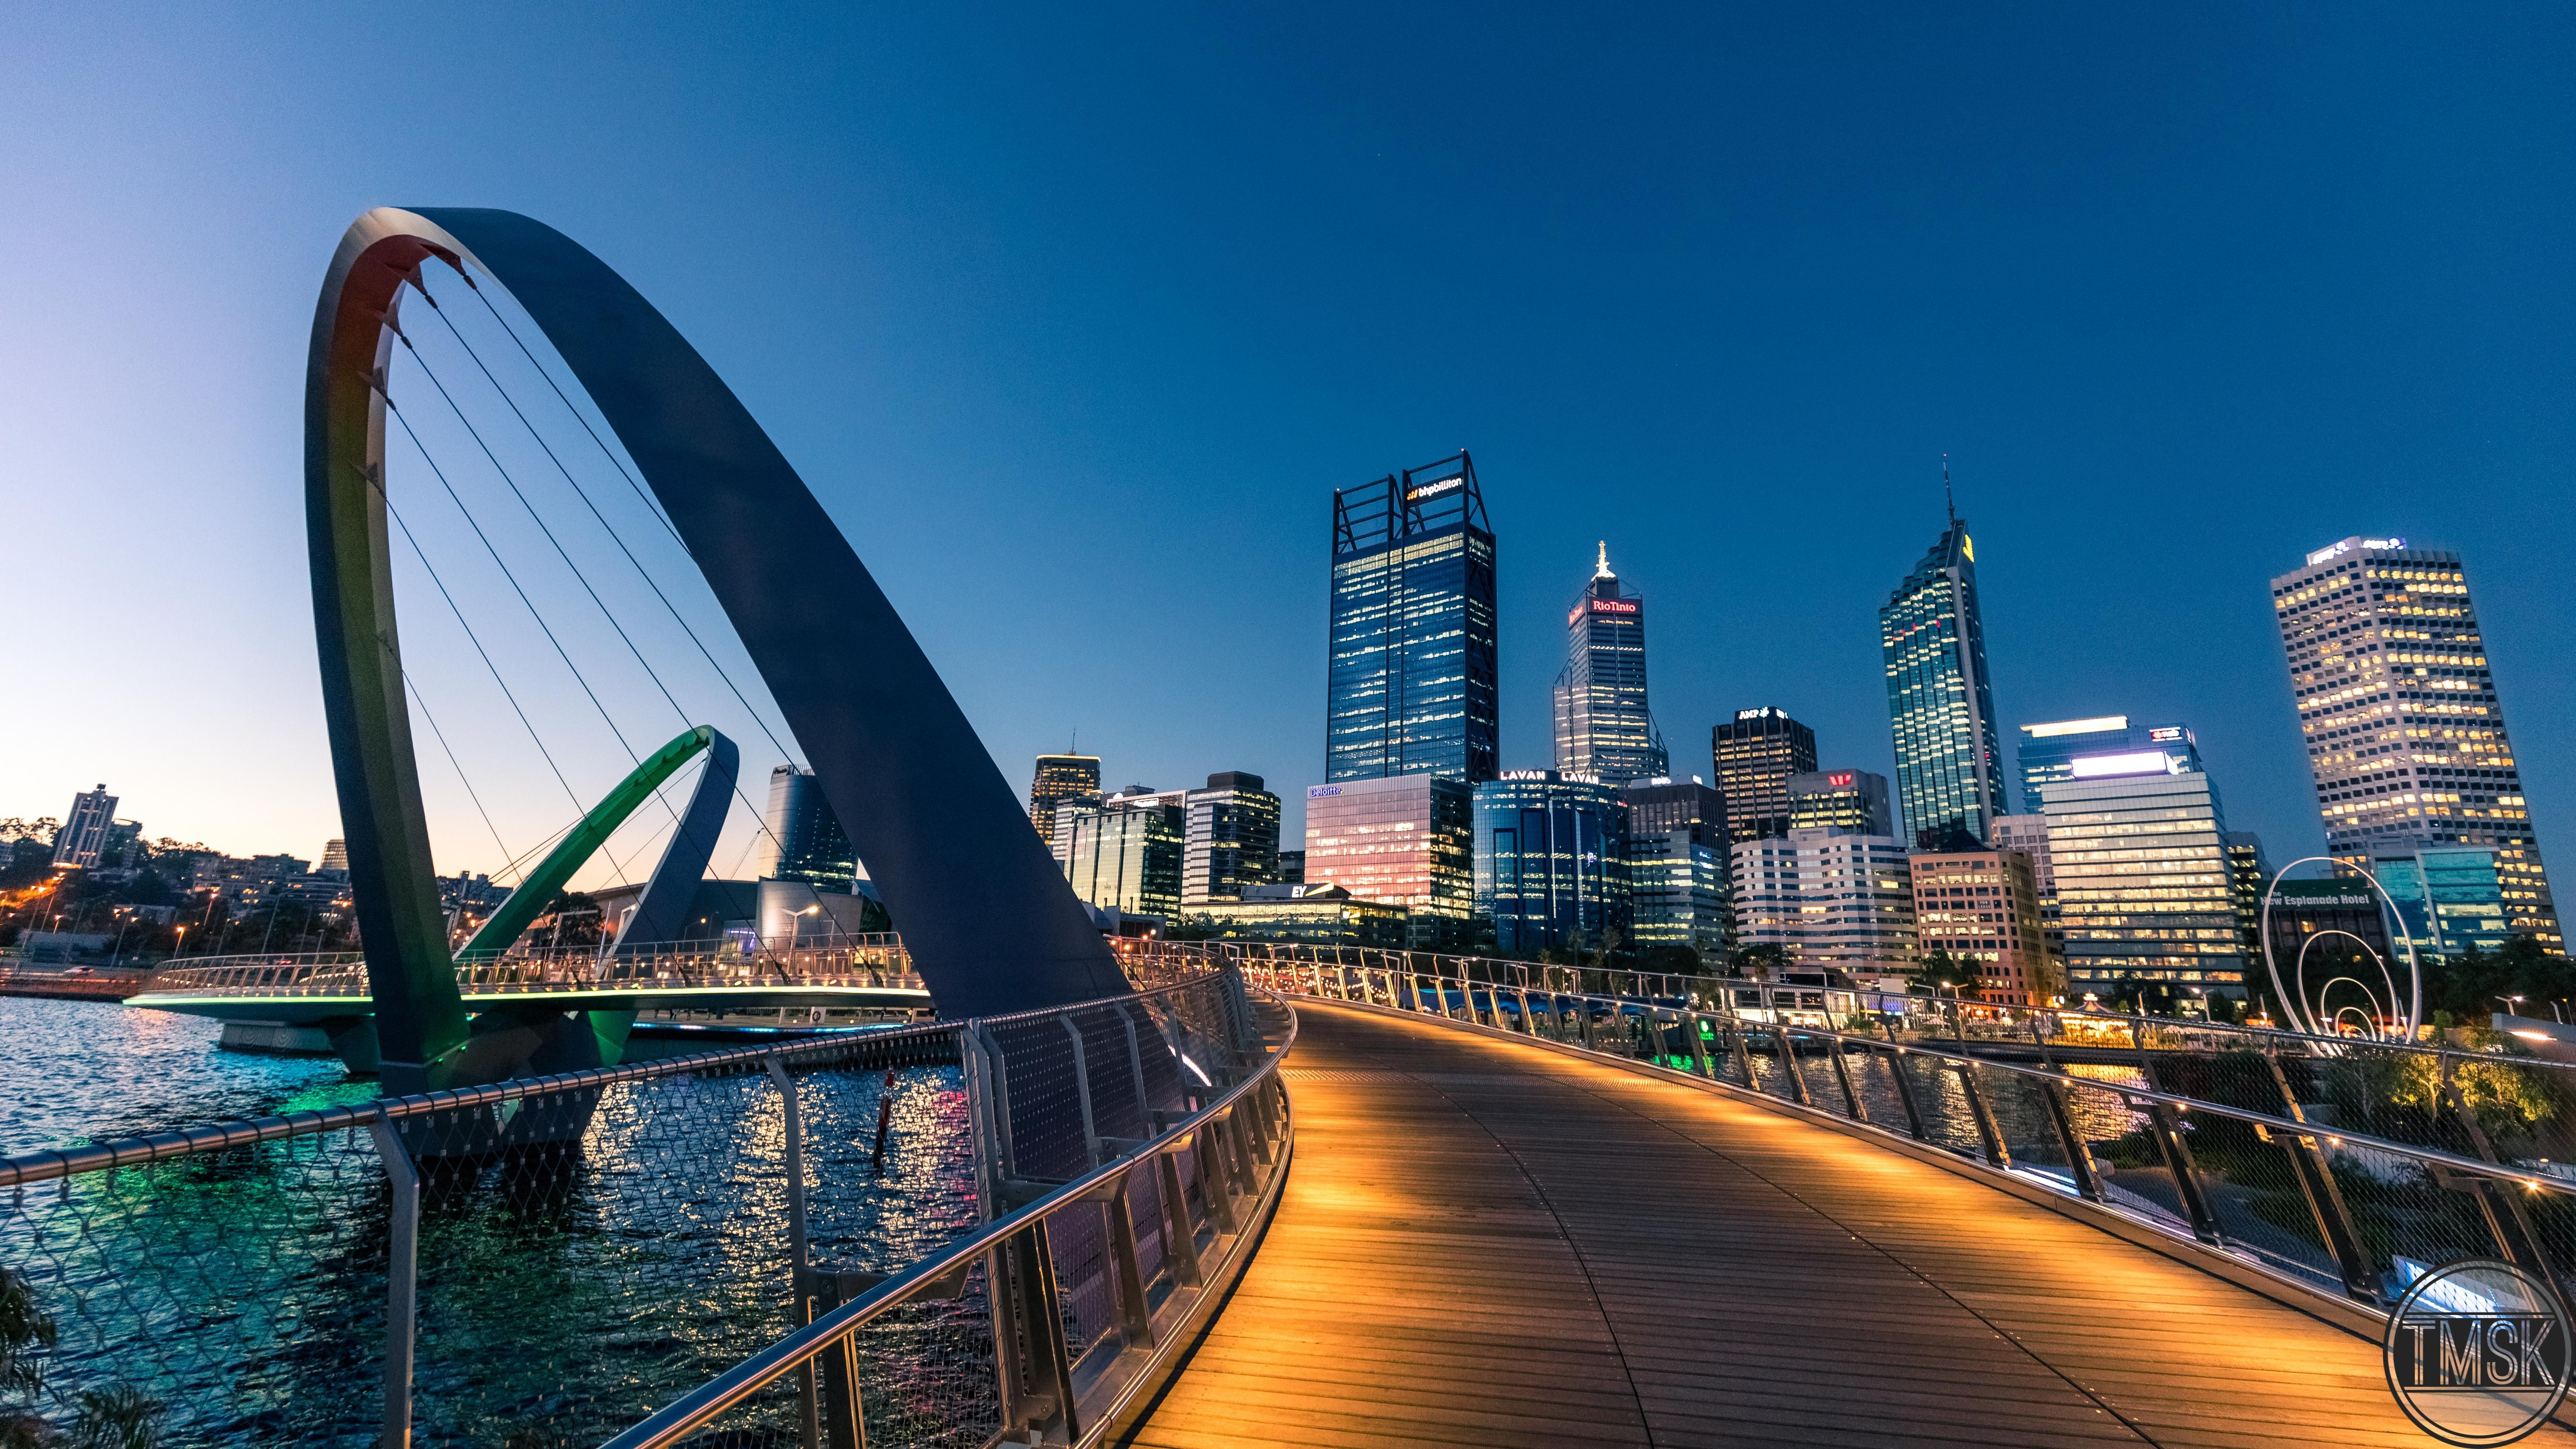 Pin by matt gallagher on c i t i e s pinterest perth and perth perth nvjuhfo Images